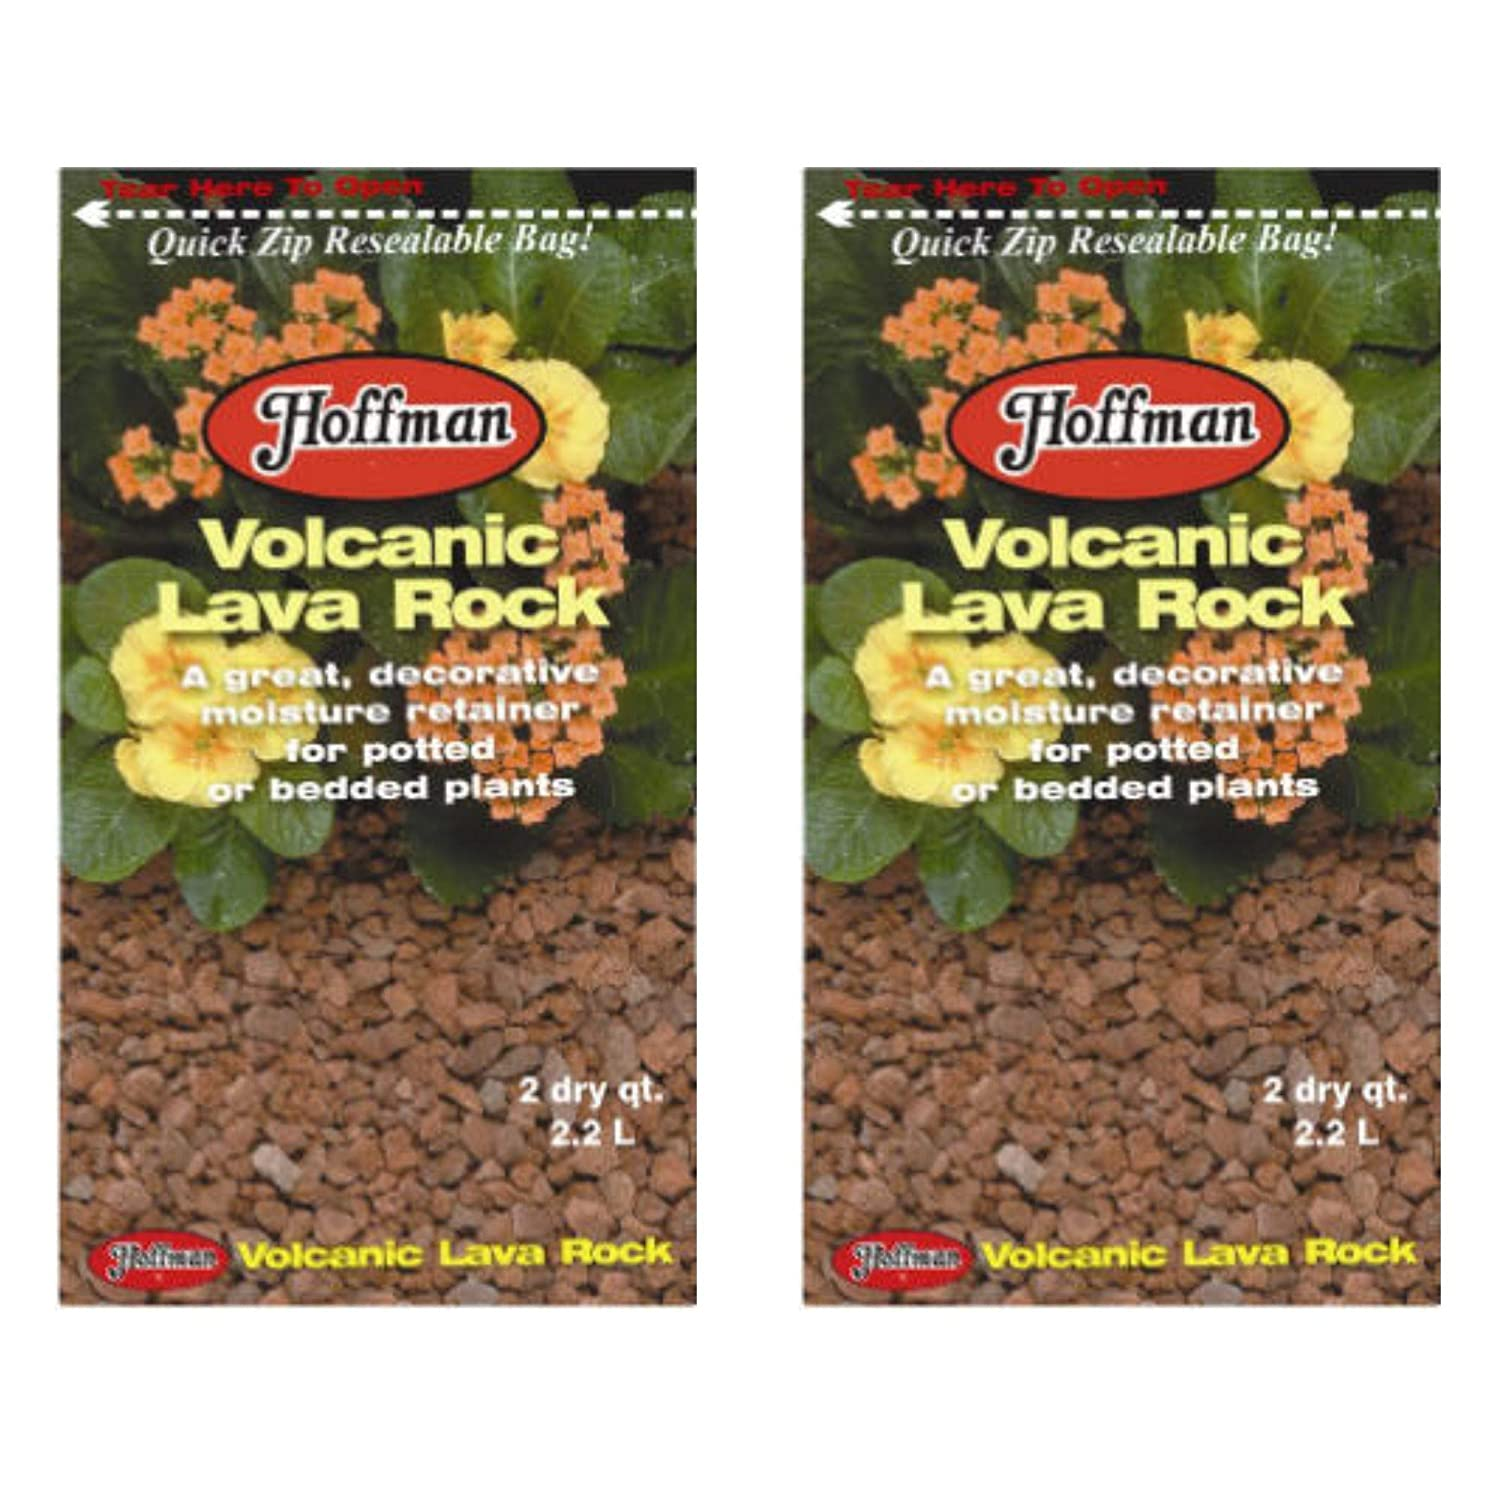 Hoffman Click Image to Open expanded View 14452 Volcanic Lava Rock, 2 Quarts (2)